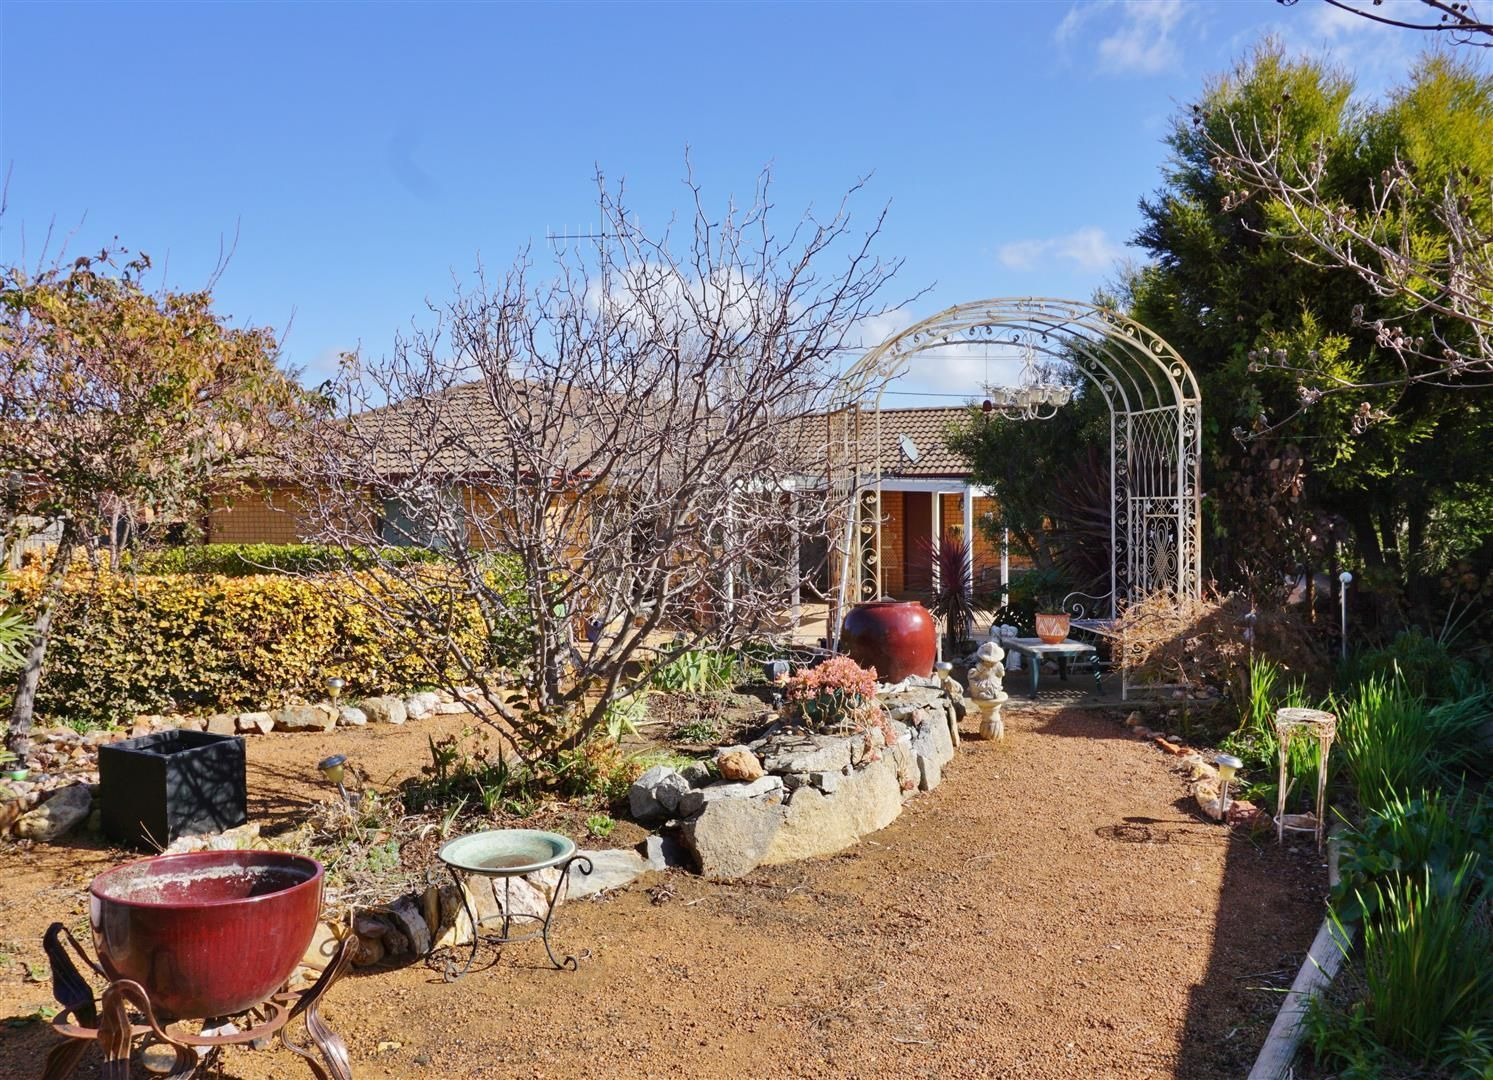 Grand junction road yass nsw house for sale domain